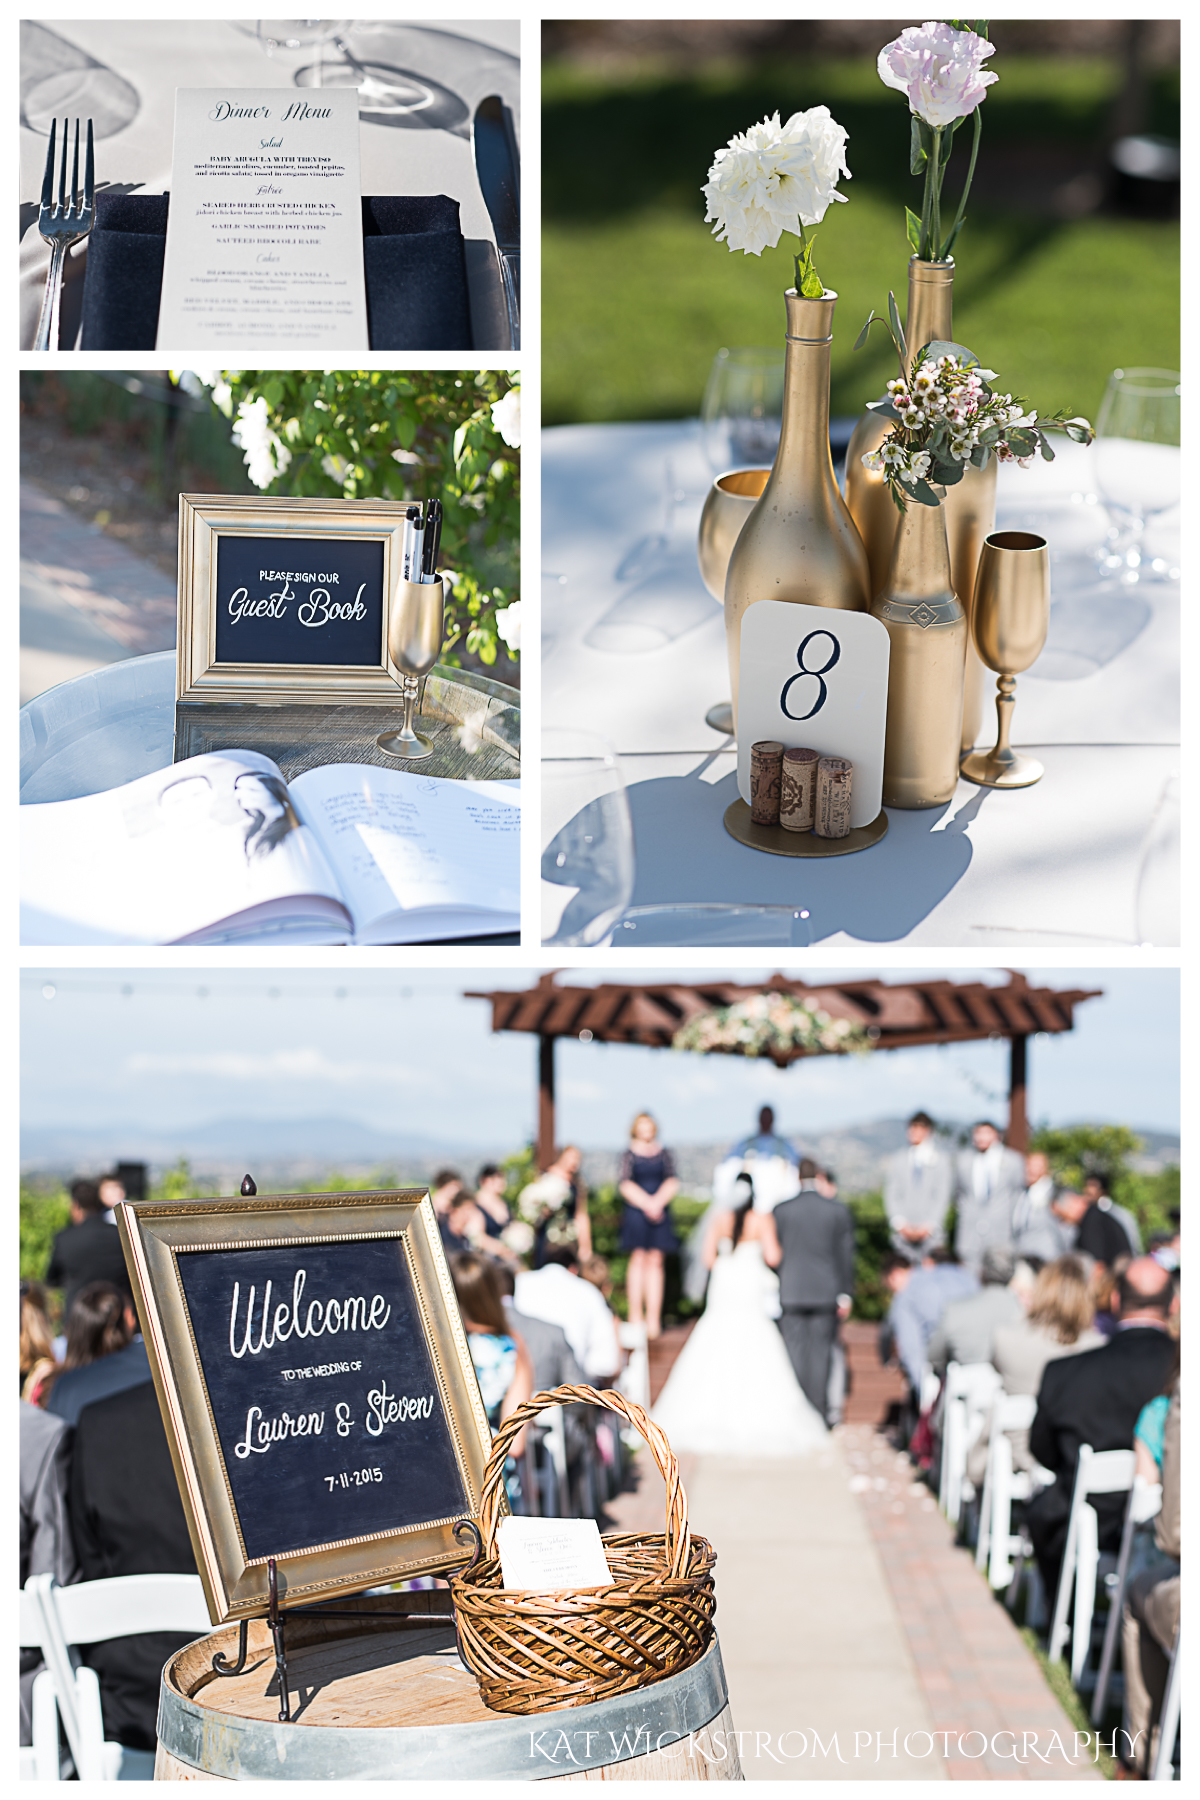 I'm in love with these wedding details. The wine bottles and vases were spray painted gold and held only a few flowers. The welcome sign was a nice touch too!